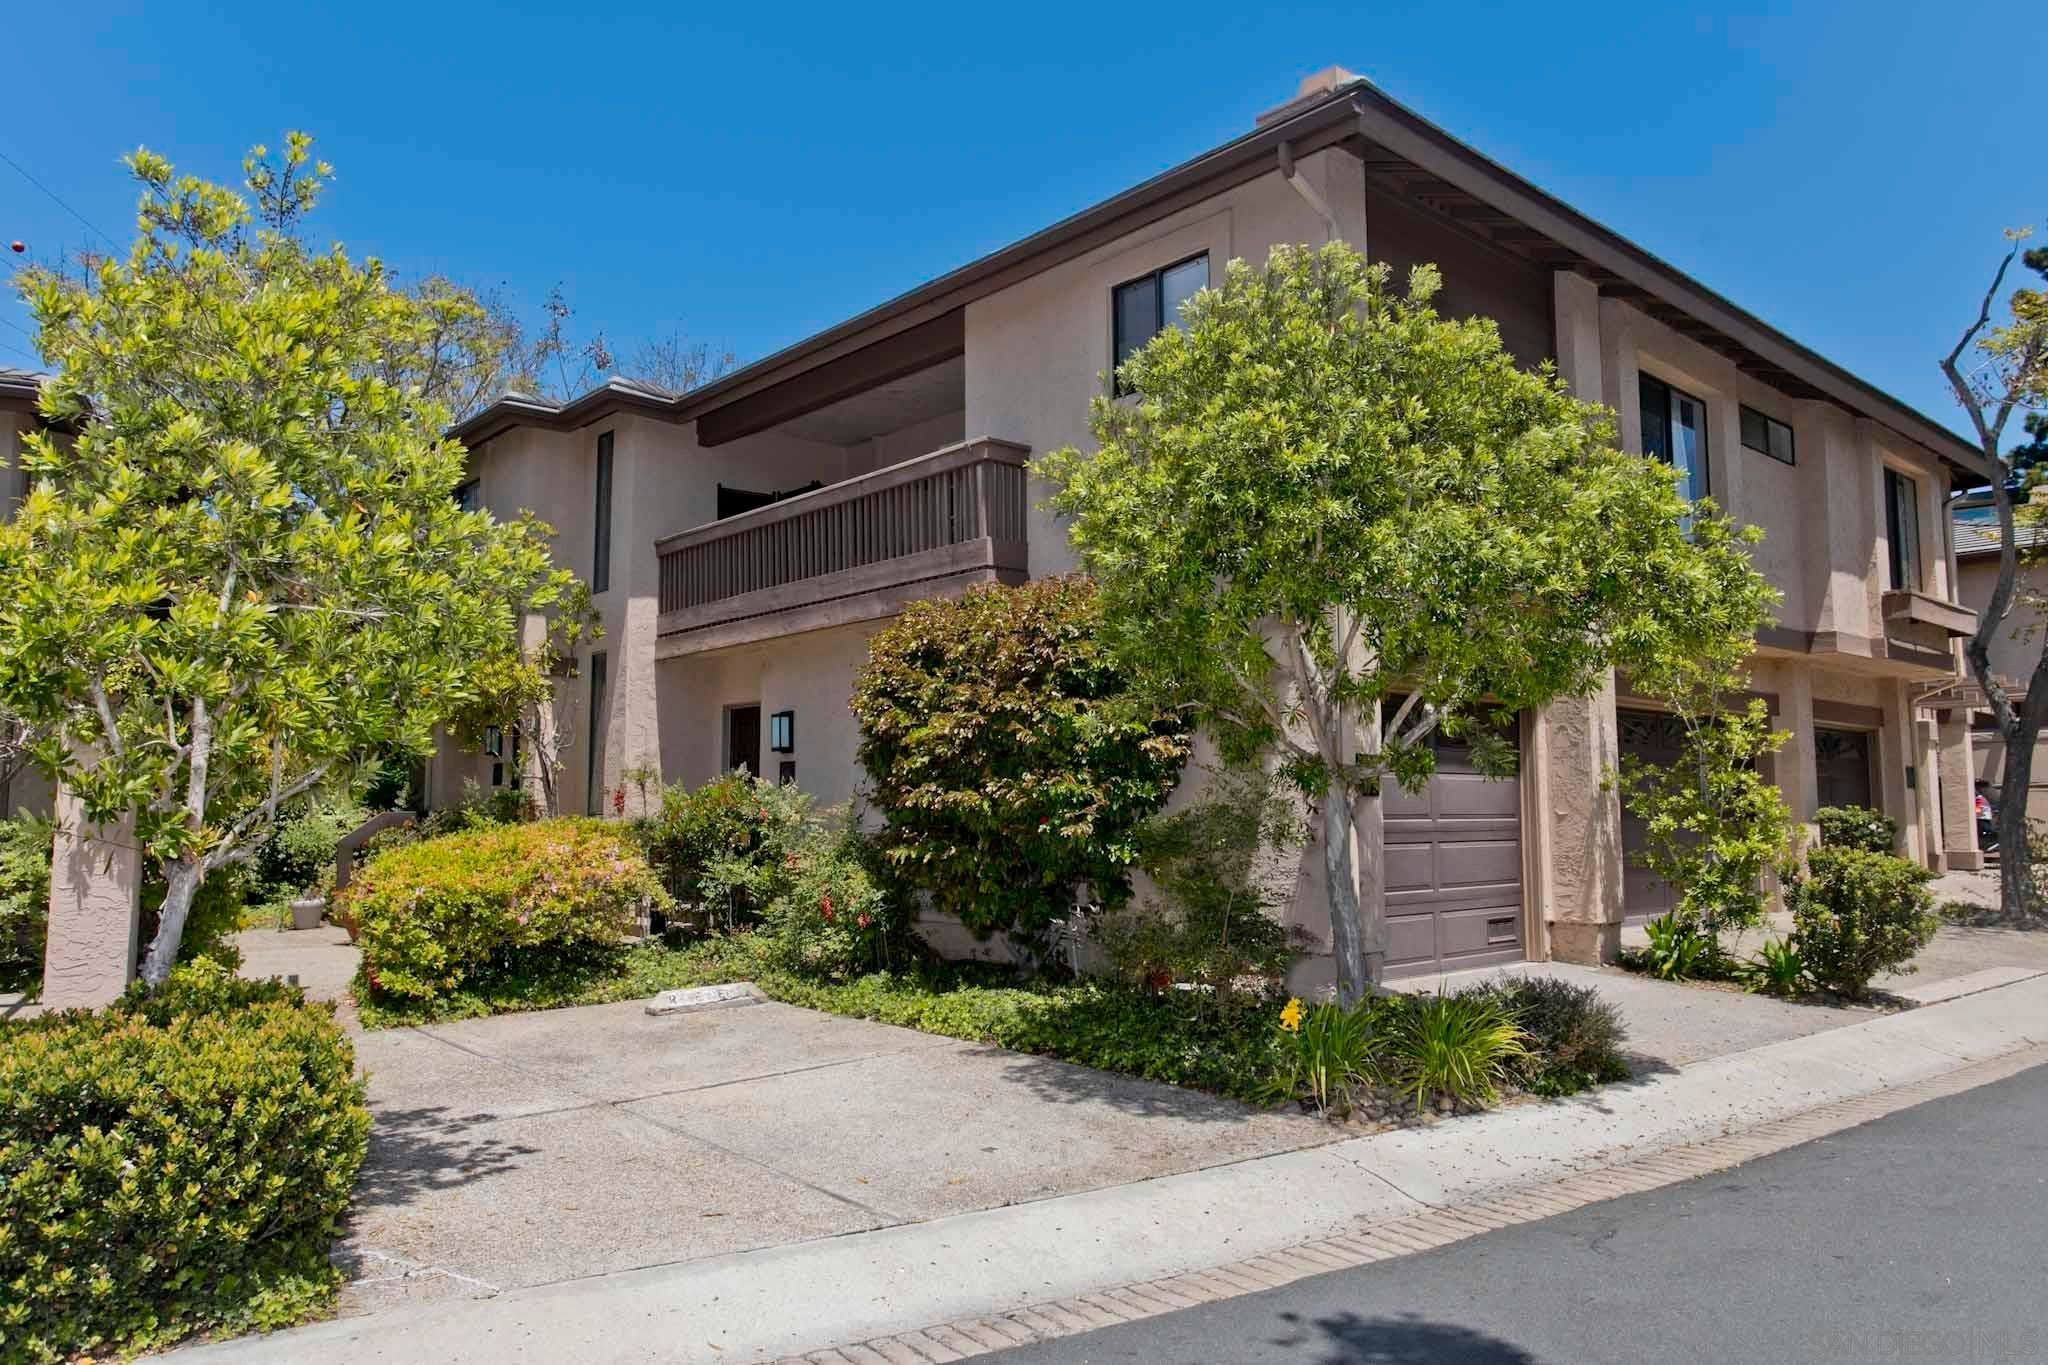 Main Photo: MISSION VALLEY Condo for sale : 2 bedrooms : 6086 Cumulus Ln. in San Diego